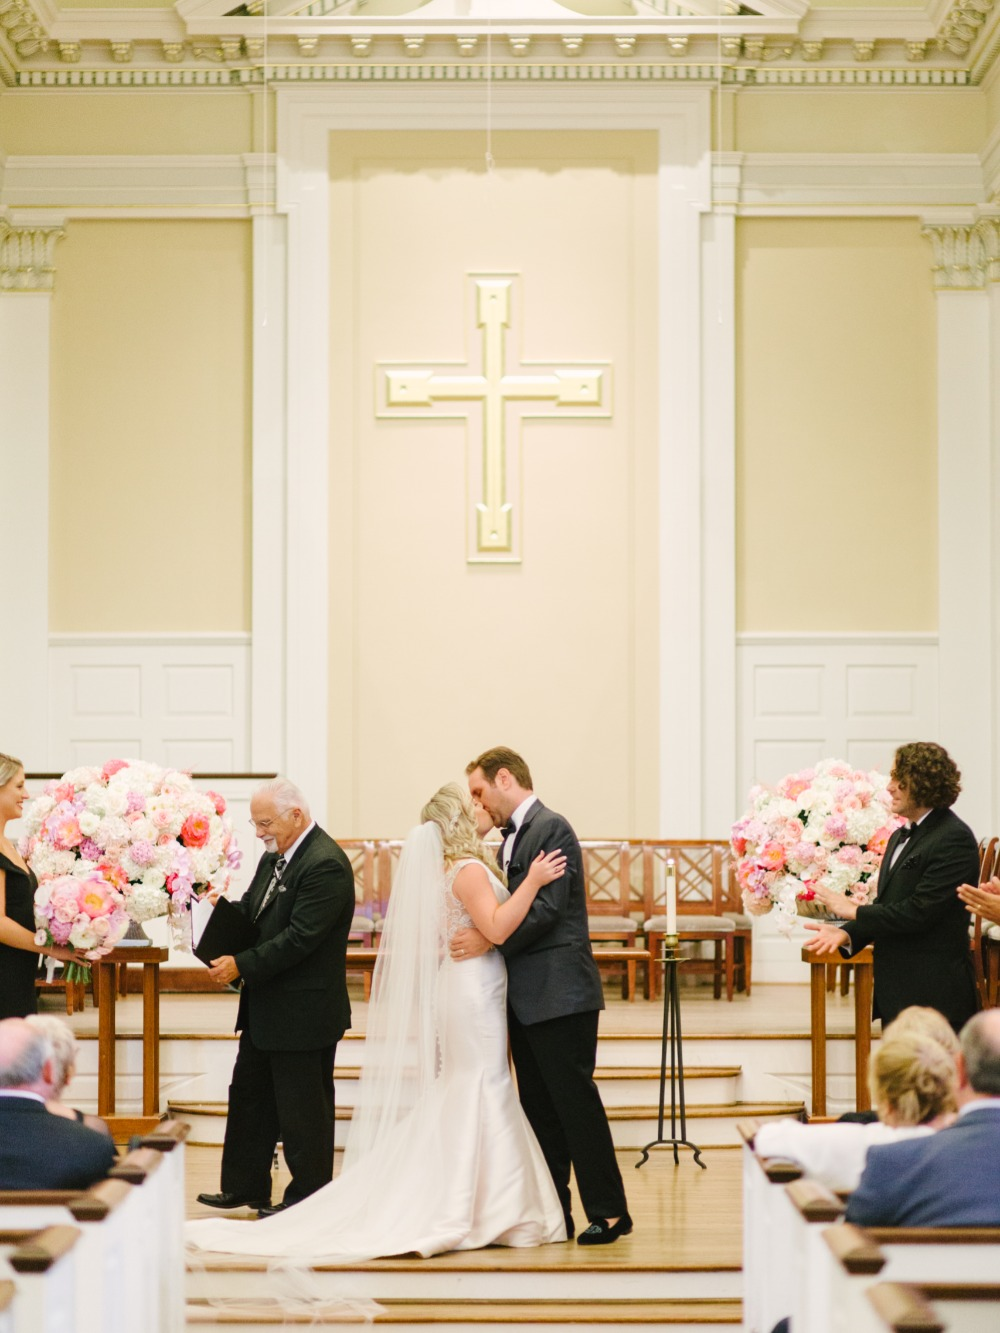 How To Create A Wedding Experience That Is Truly Unique